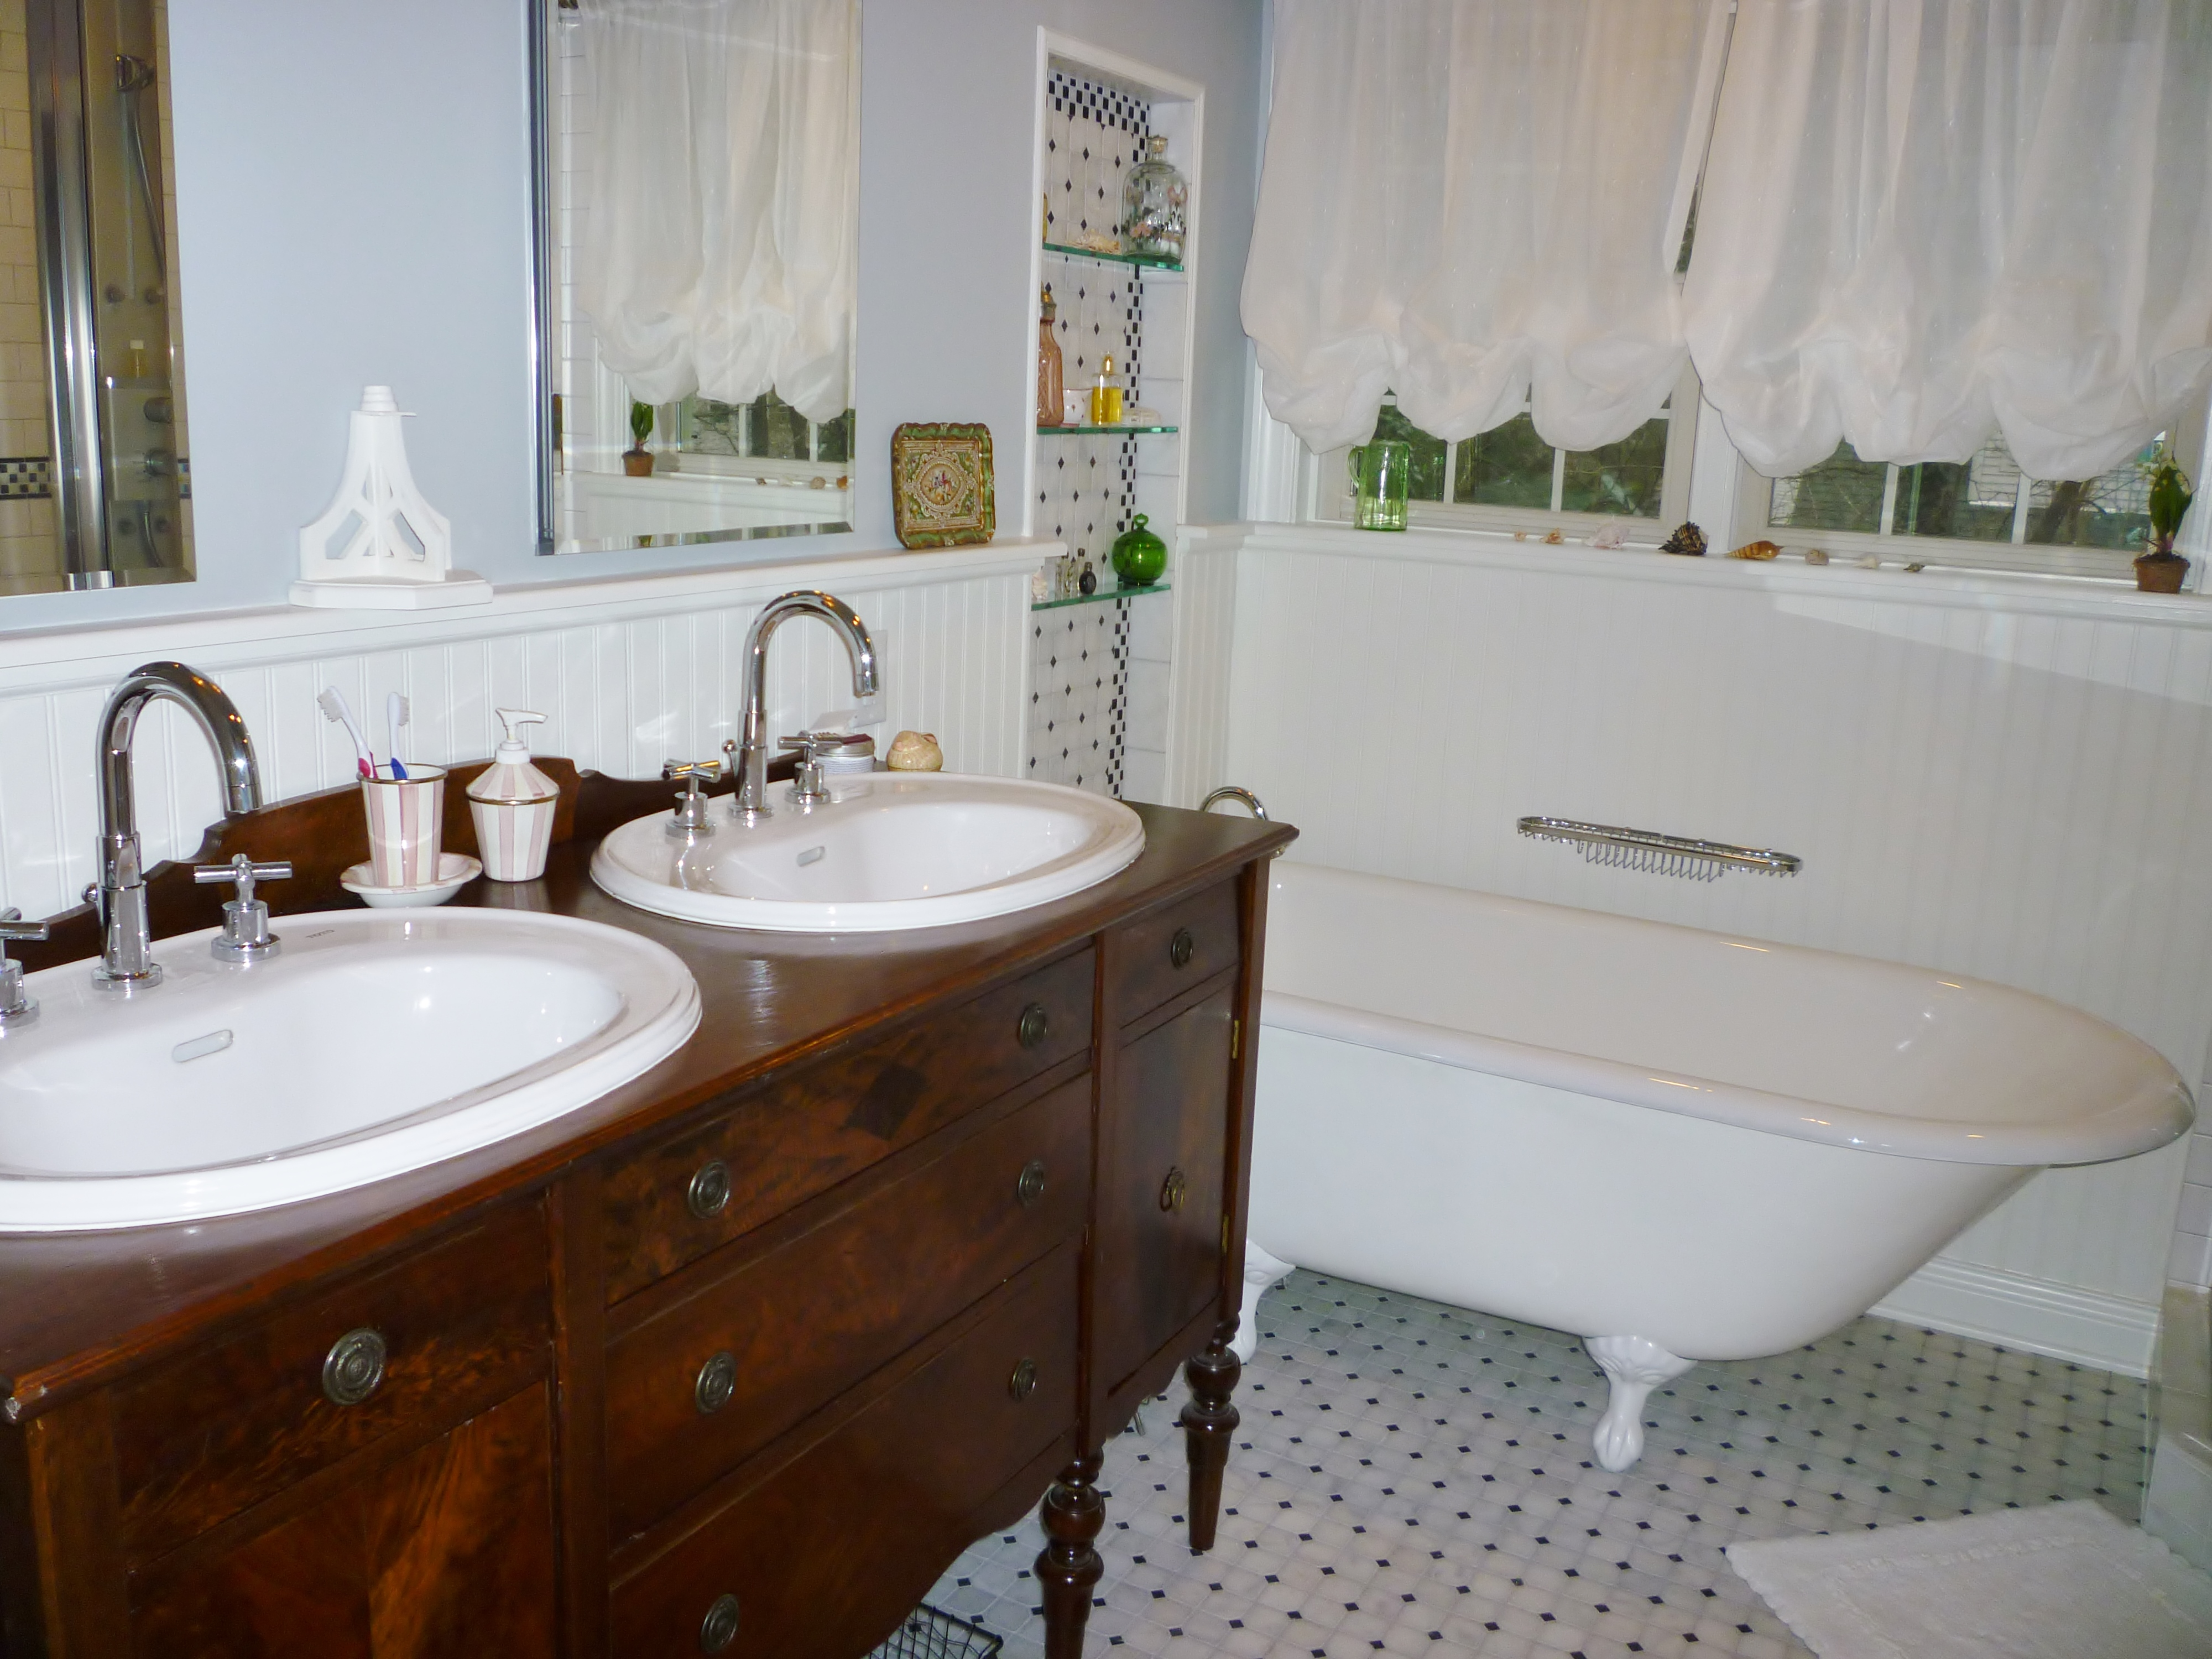 full-bathroom-remodel-complete-with-antique-buffet-repurposed-as-vanity